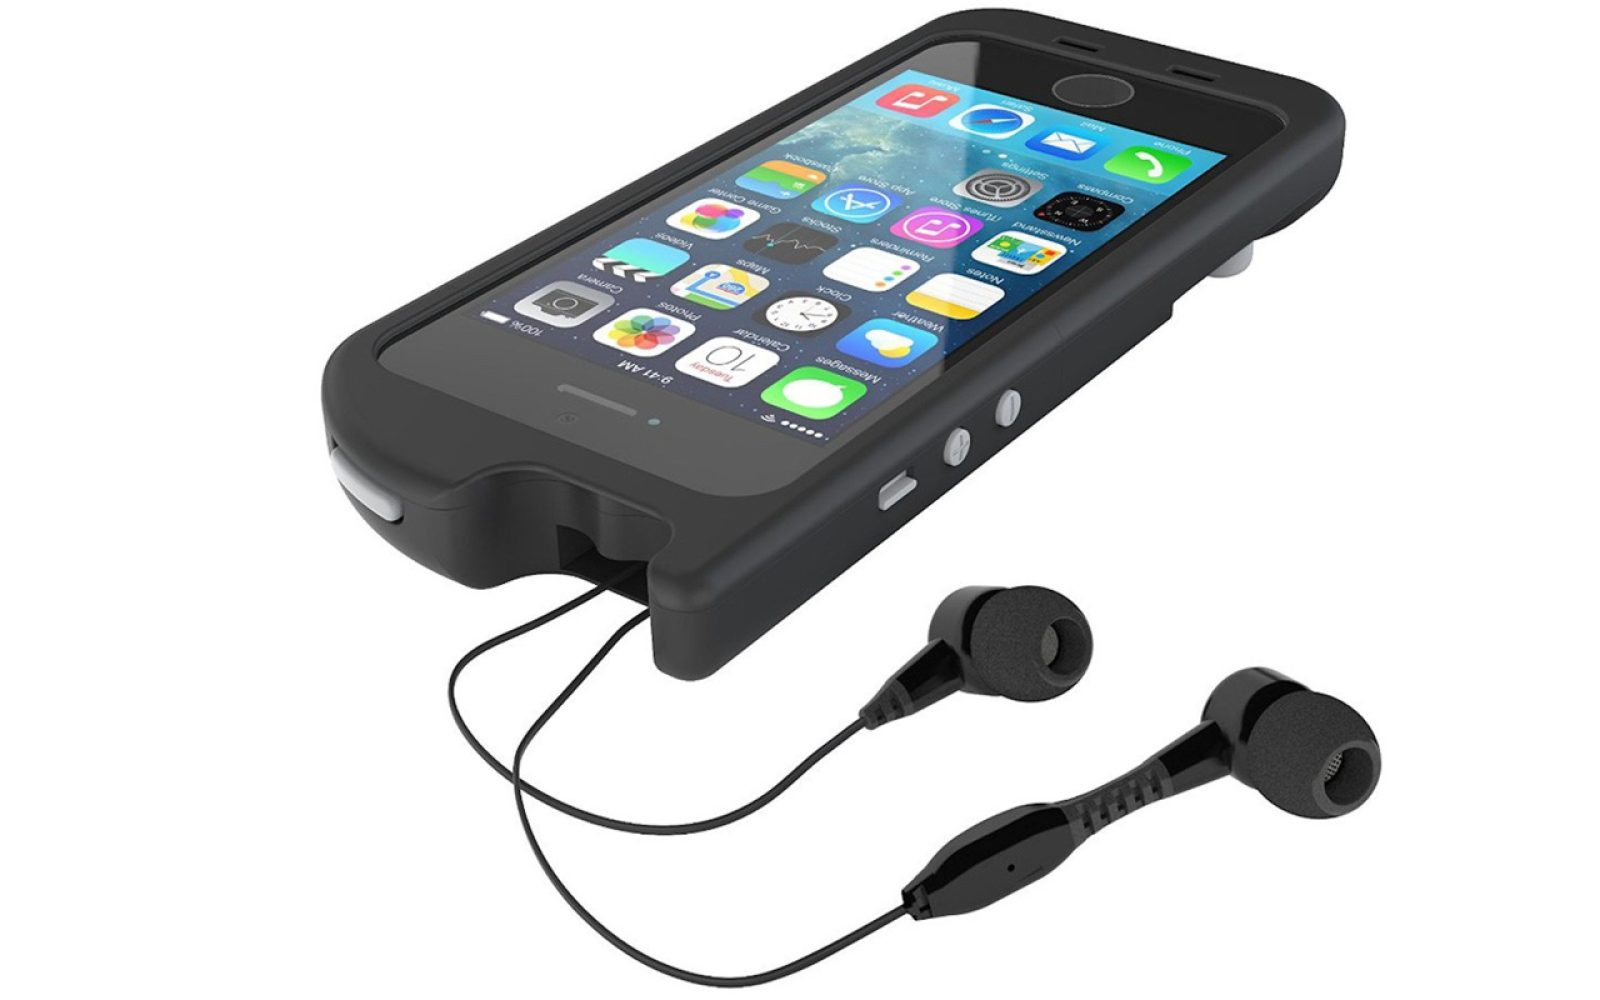 Daily Deals Turtlecell Headphone Case For Iphone 5 5s 25 Mpow Bluetooth Receiver 40 W 35mm Audio Cable 20 More